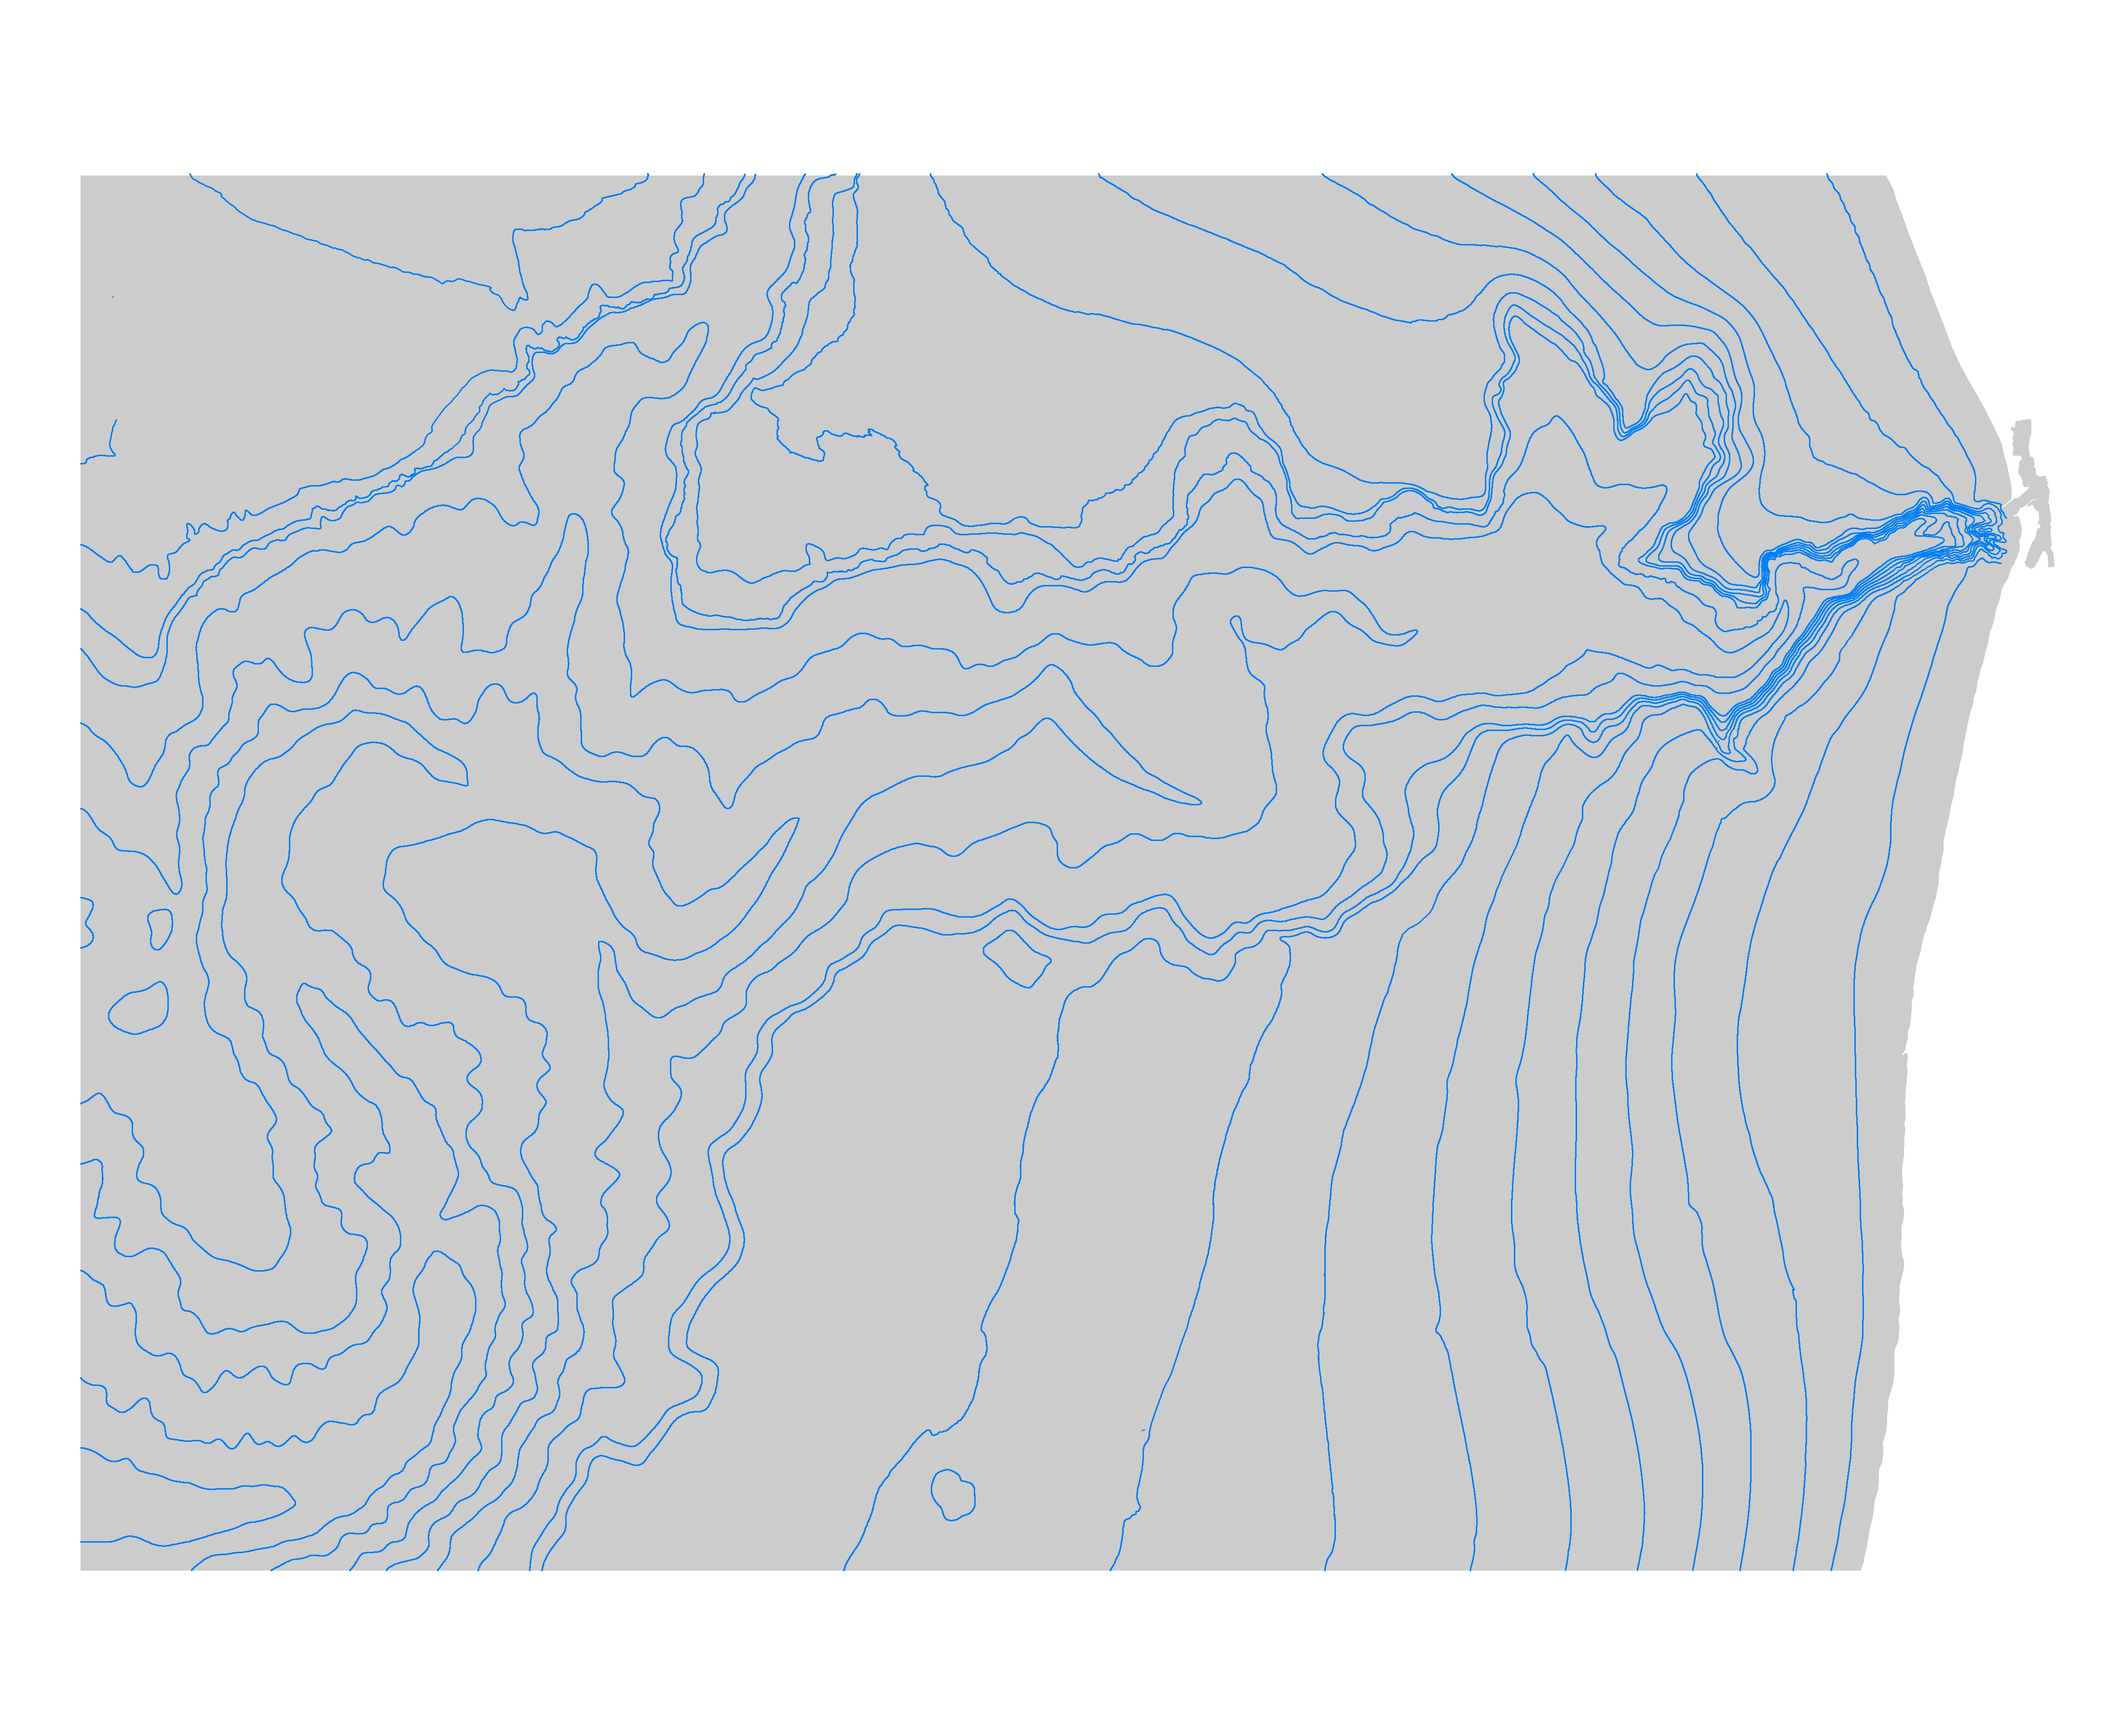 Bathymetric contours of Monterey Canyon and Vicinity.